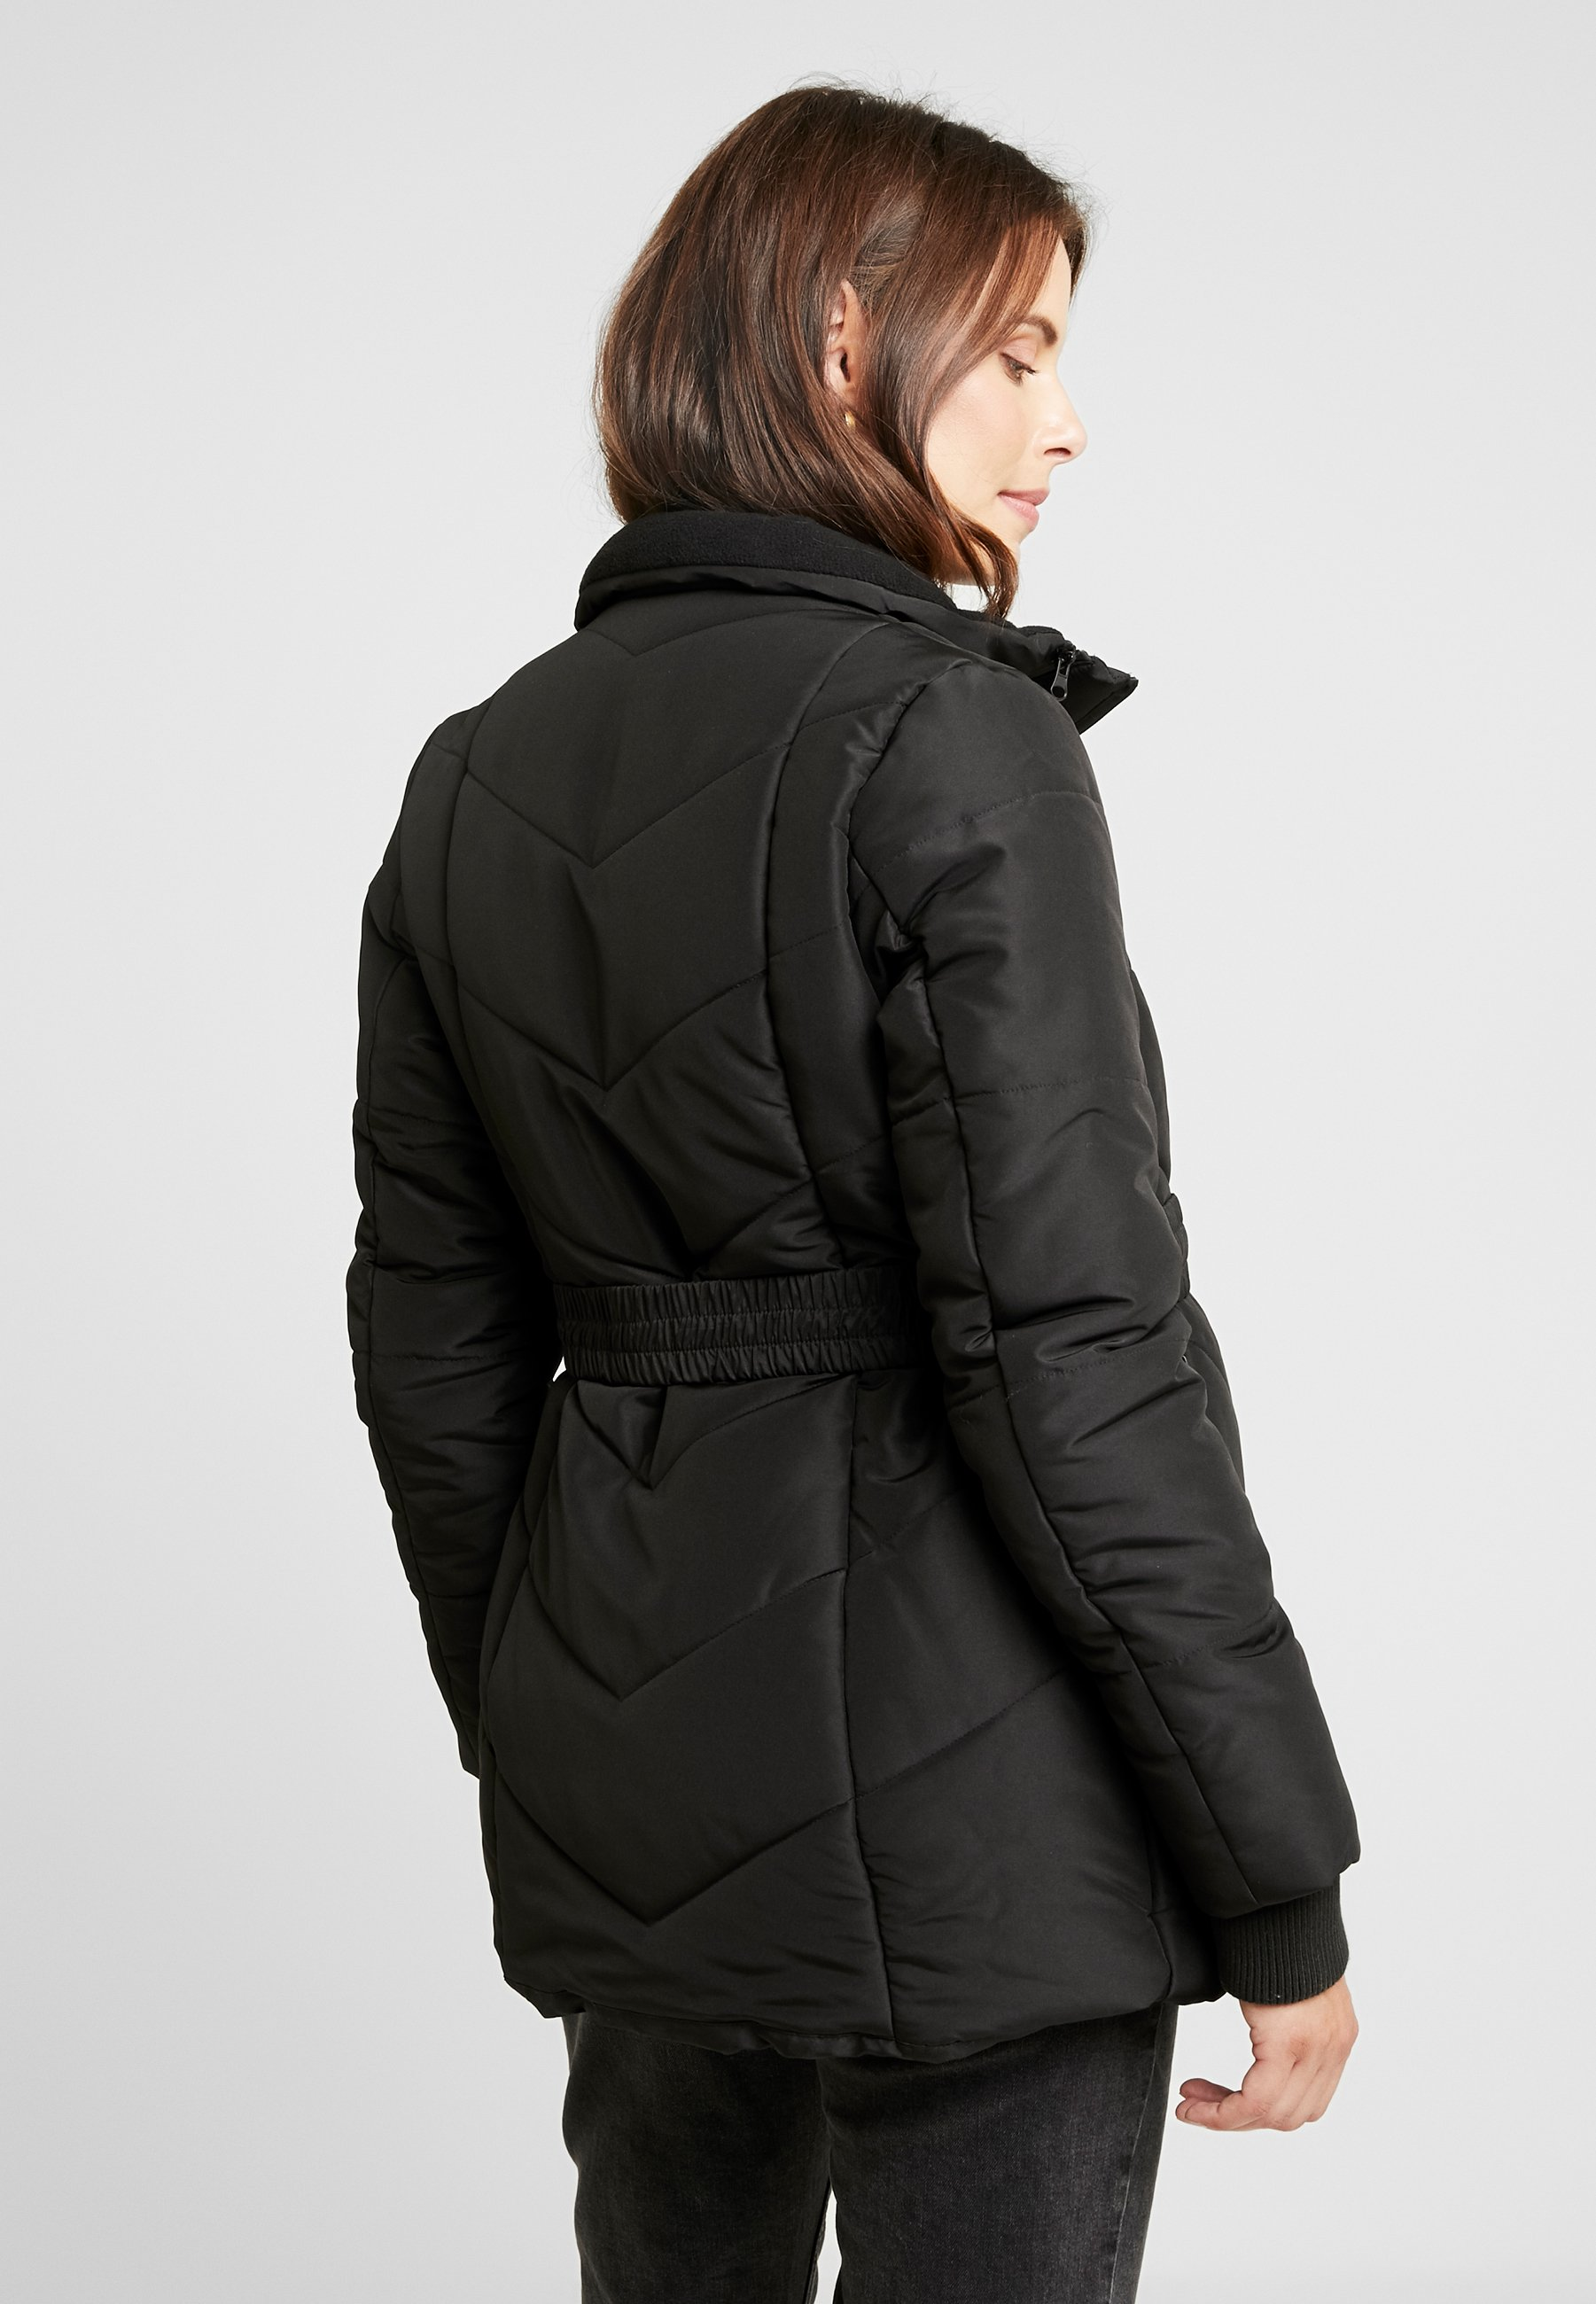 Double Zipper PaddedVeste D'hiver Coat Black Love2wait EIWDYH9be2